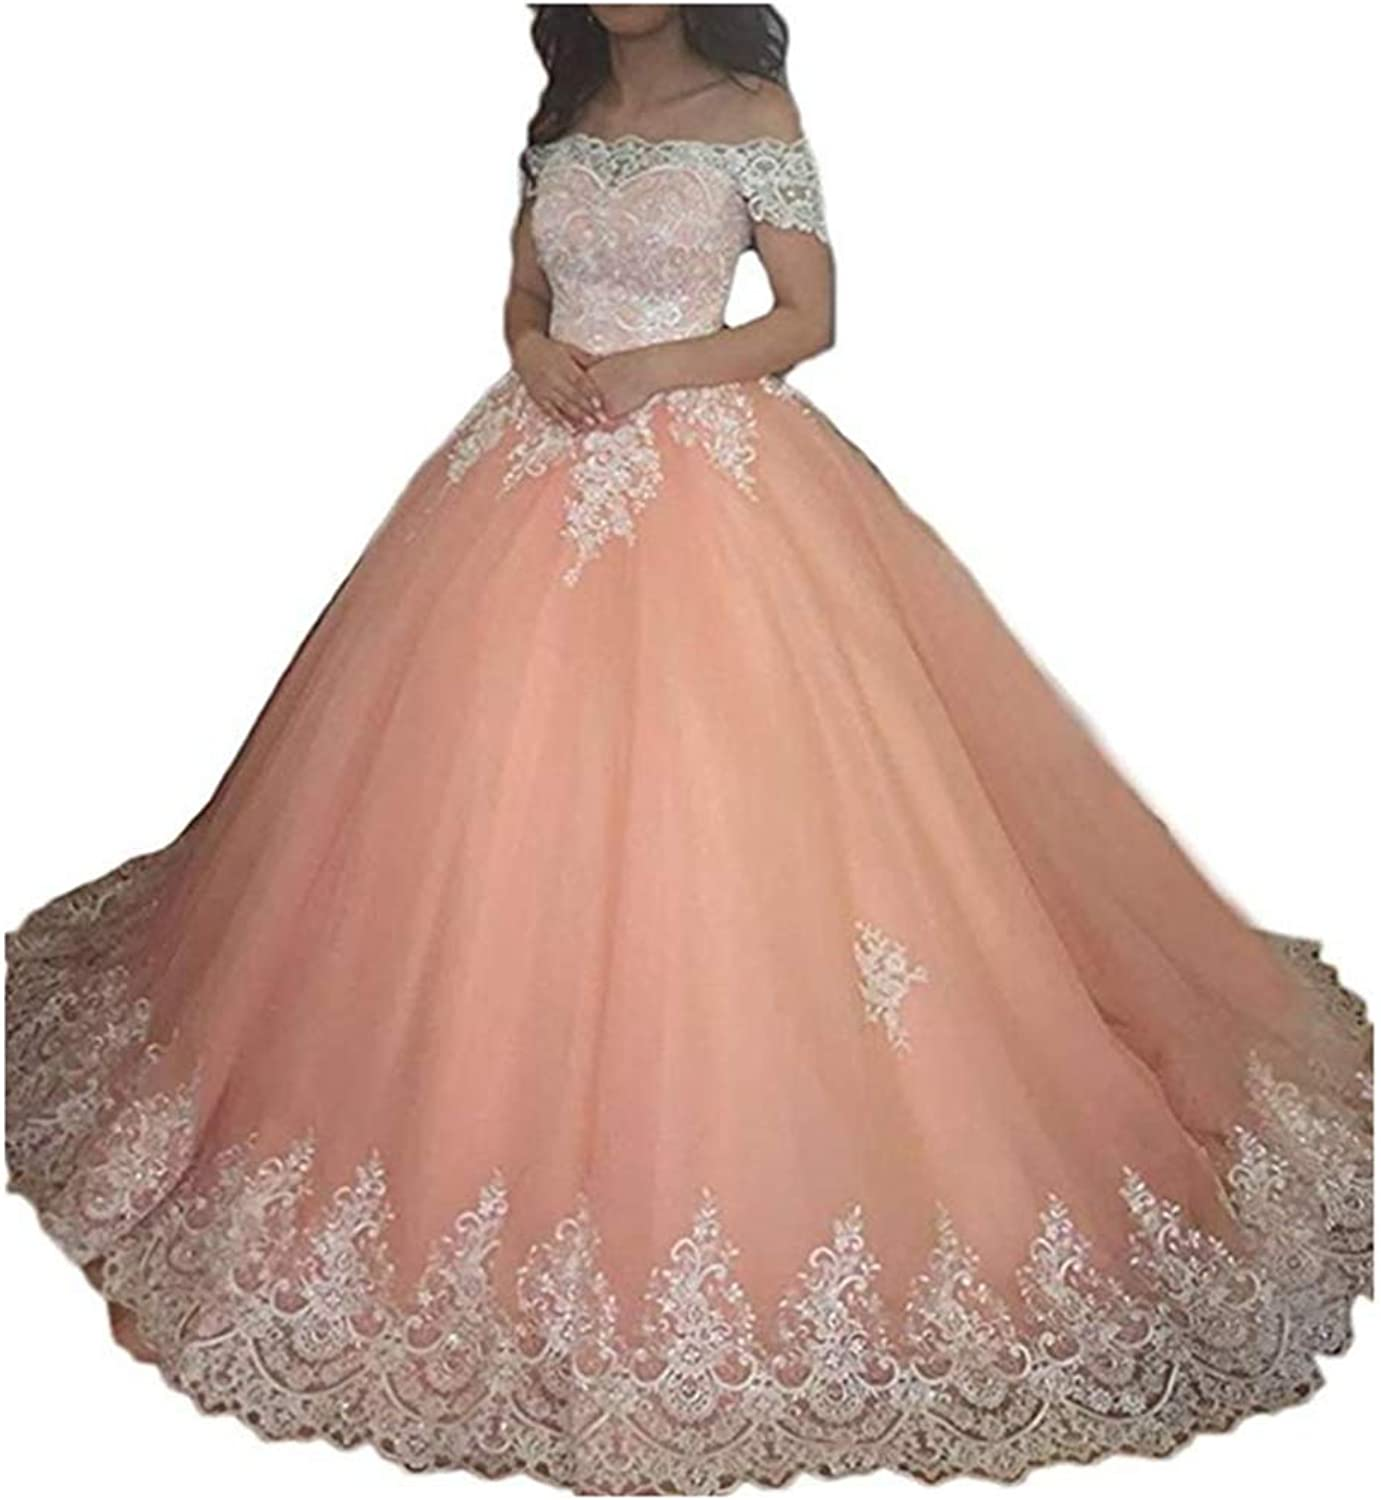 Kaitaijidian Women's Ball Gown Prom Quinceanera Dresses Long Off Shoulder Lace Wedding Gowns